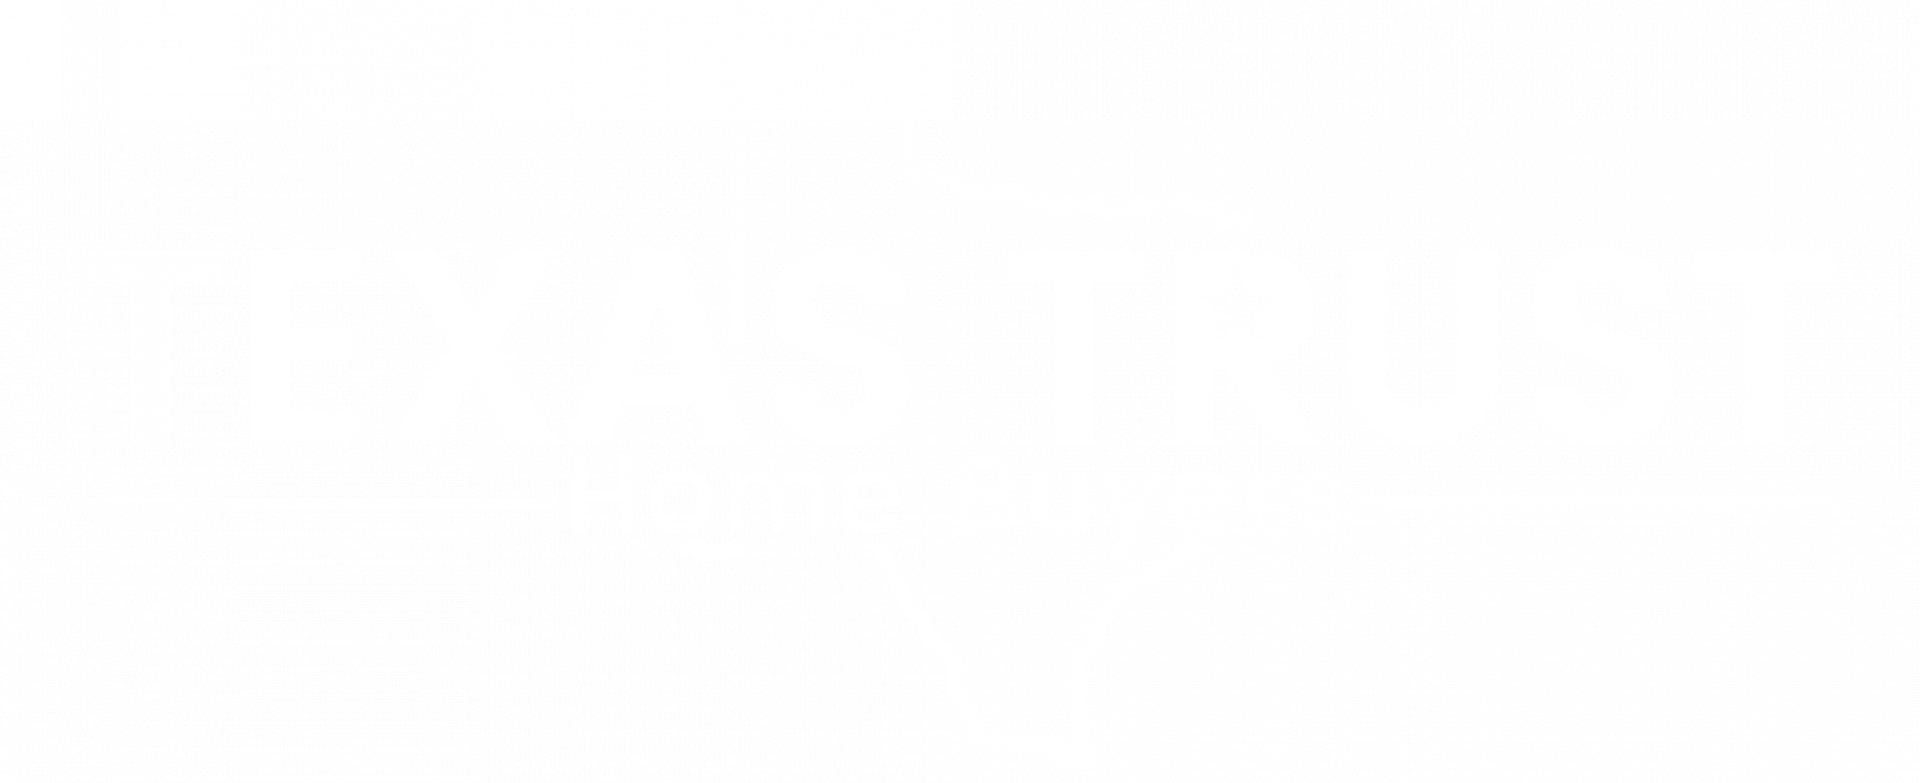 Texas Trust Home Buyers logo